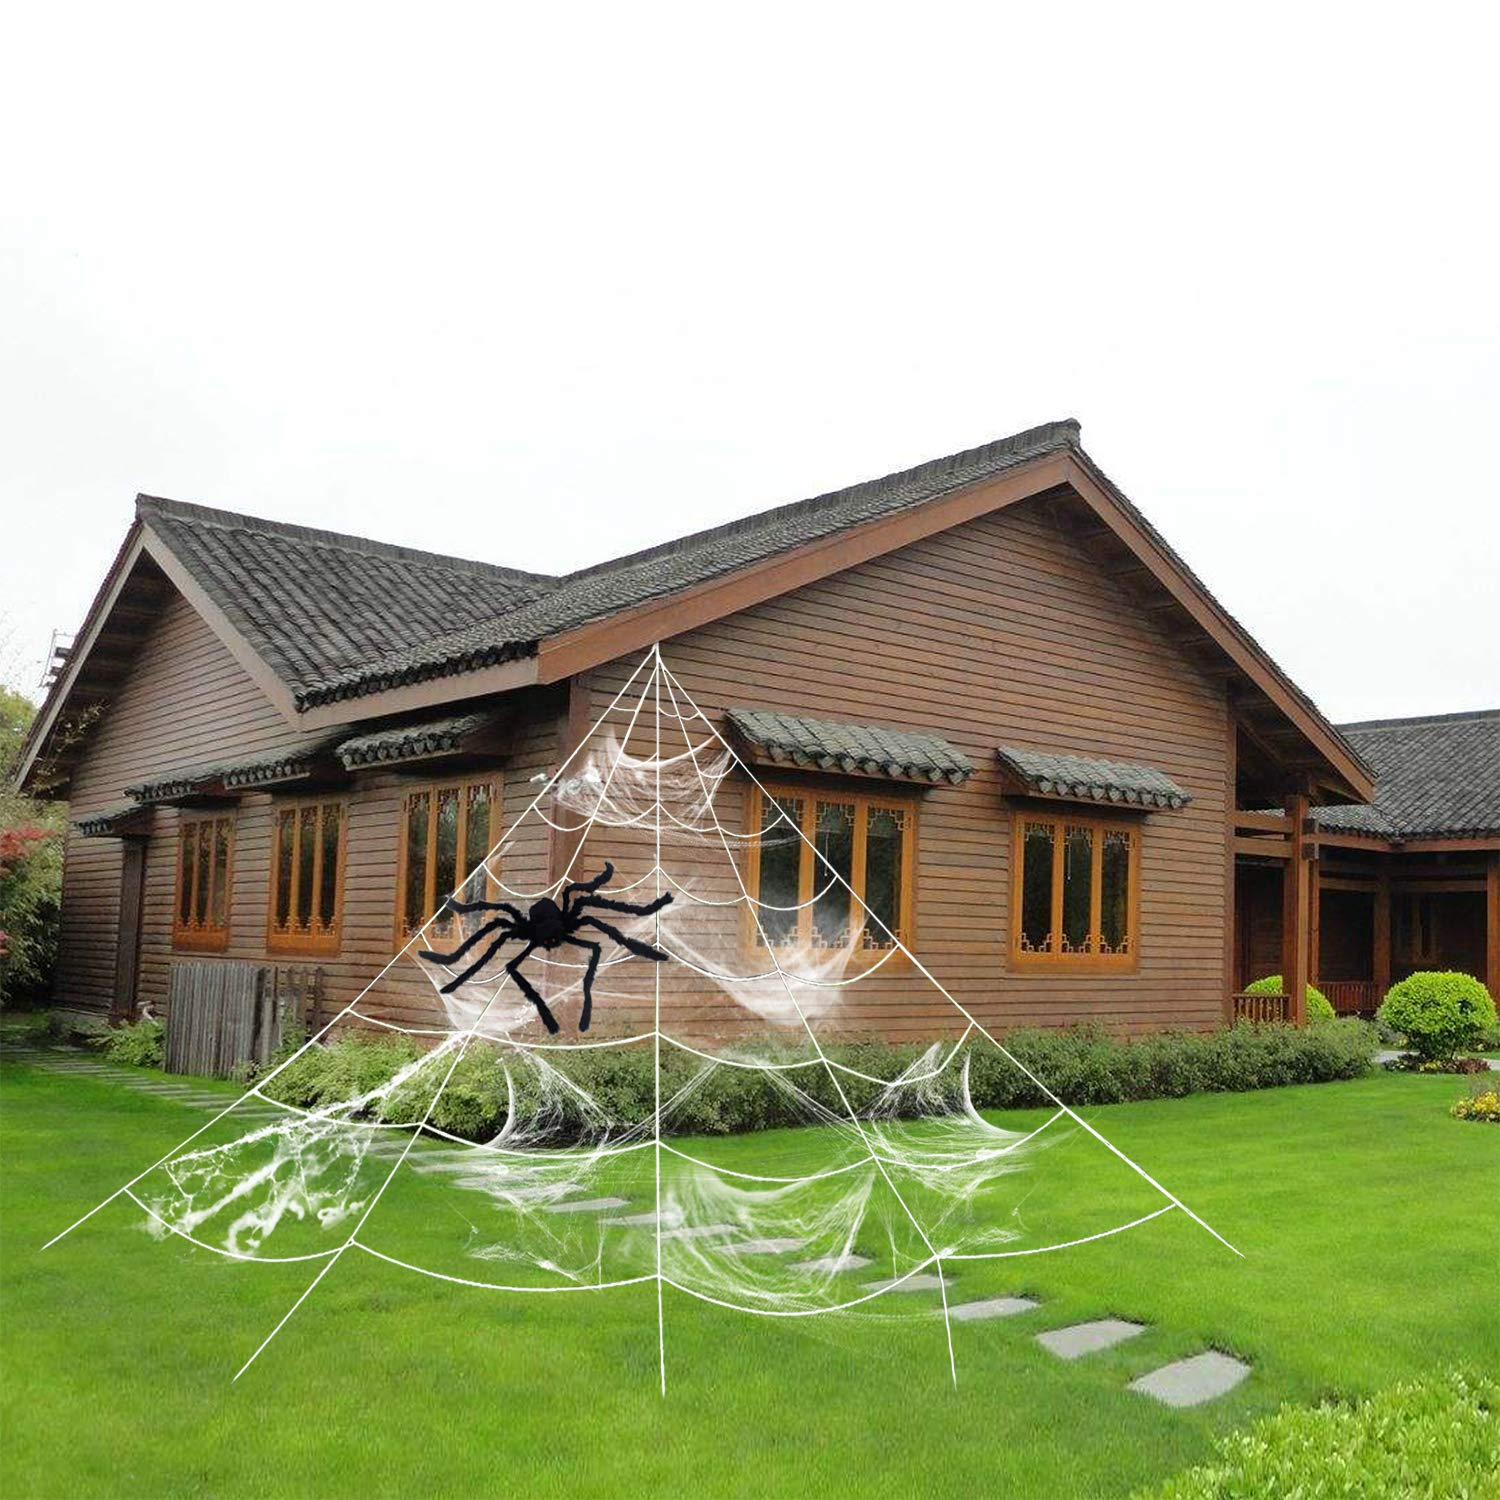 HYRIXDIRECT Outdoor Halloween Decorations Halloween Spider Decoration Triangular Mega Spider Web with Stretch Cobweb Set Party Yard Decor (A Large Spider Included)